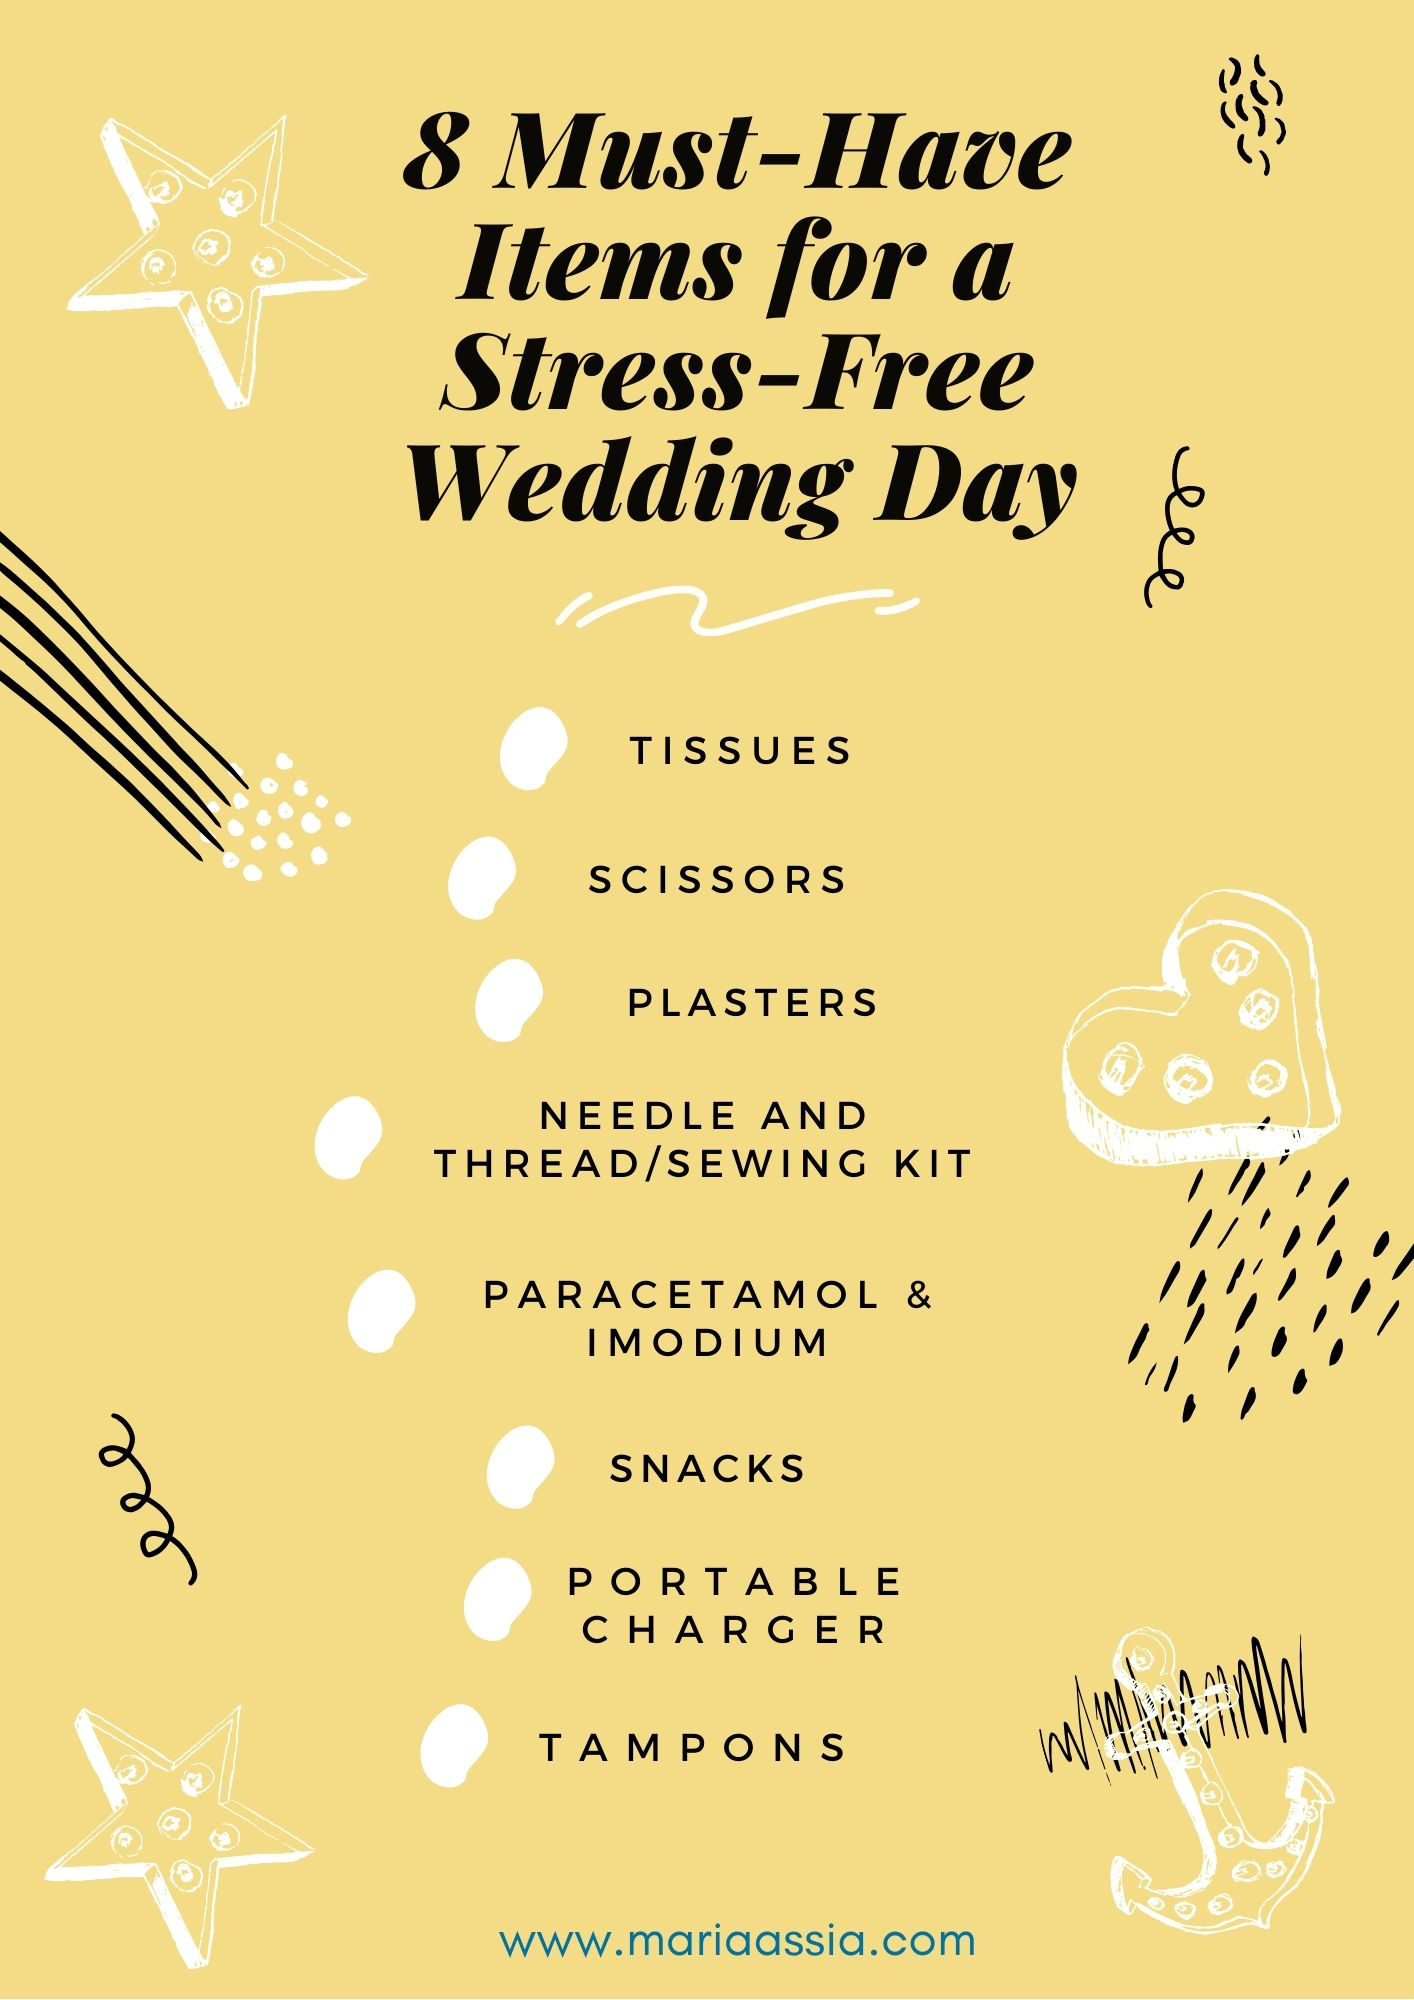 8 Must-Have Items for a Stress-Free Wedding Day